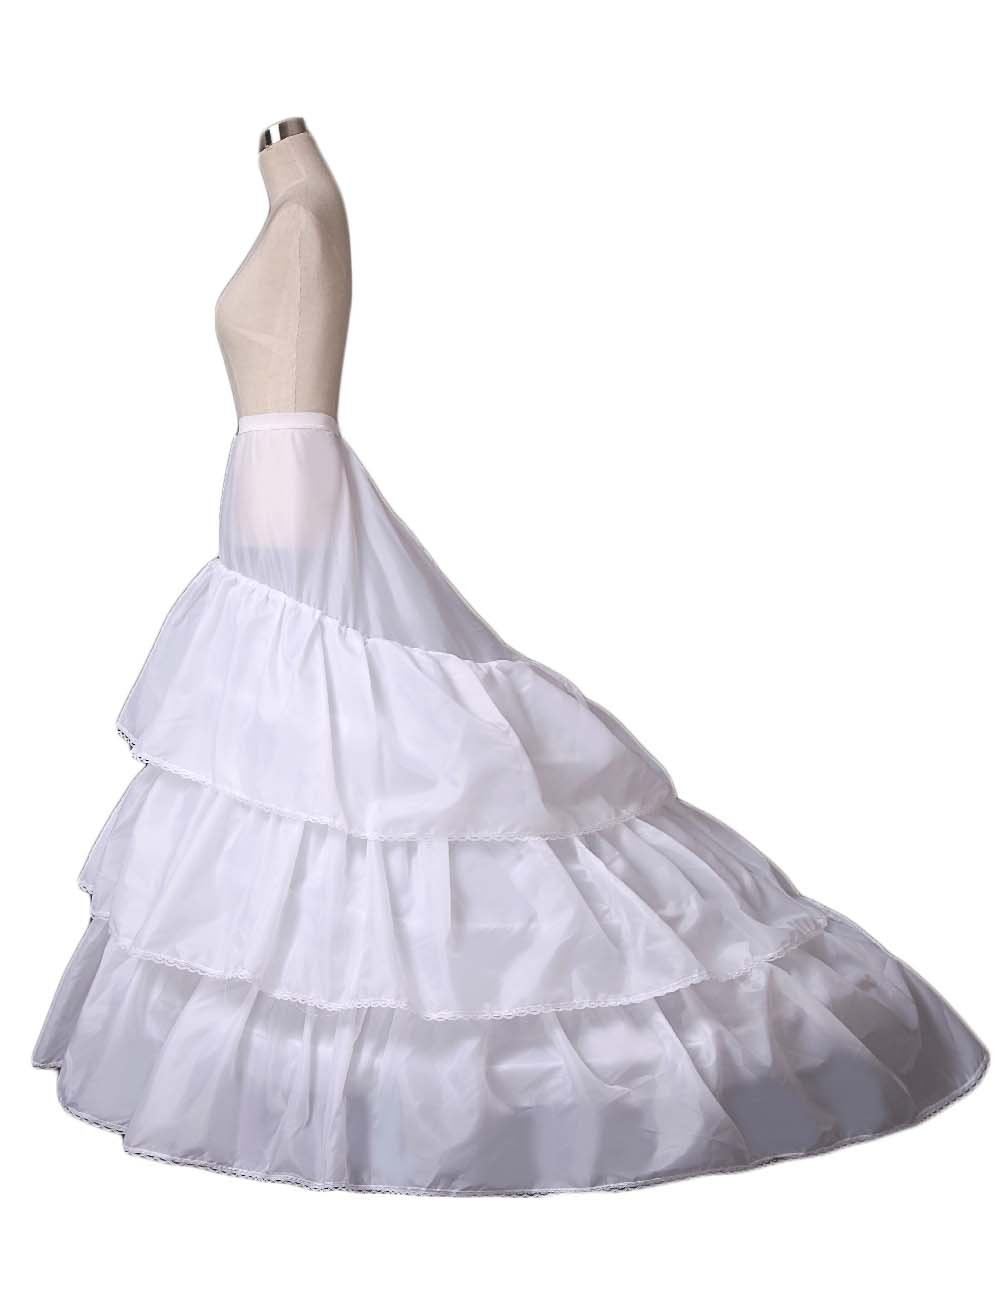 3 Hoops Long Petticoat for Chapel or Cathedral Train Wedding Dress ...